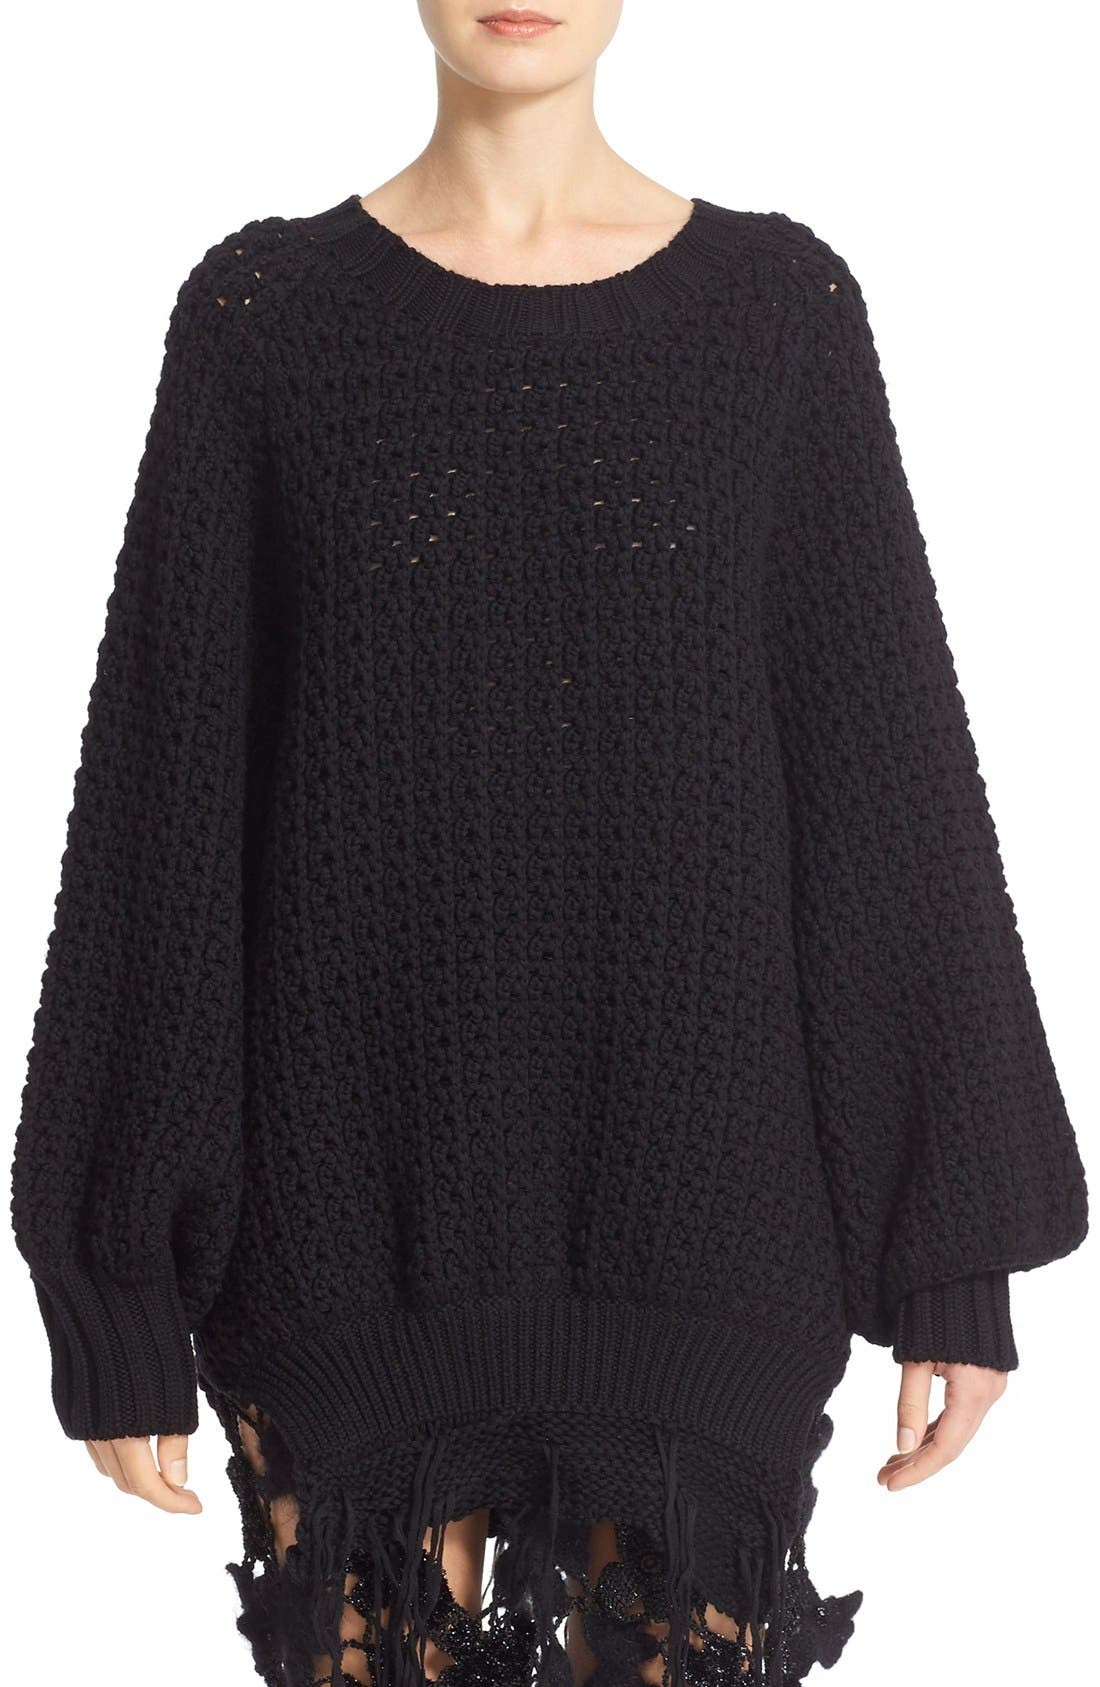 Main Image - Simone Rocha Long Chunky Knit Wool Sweater with Fringe